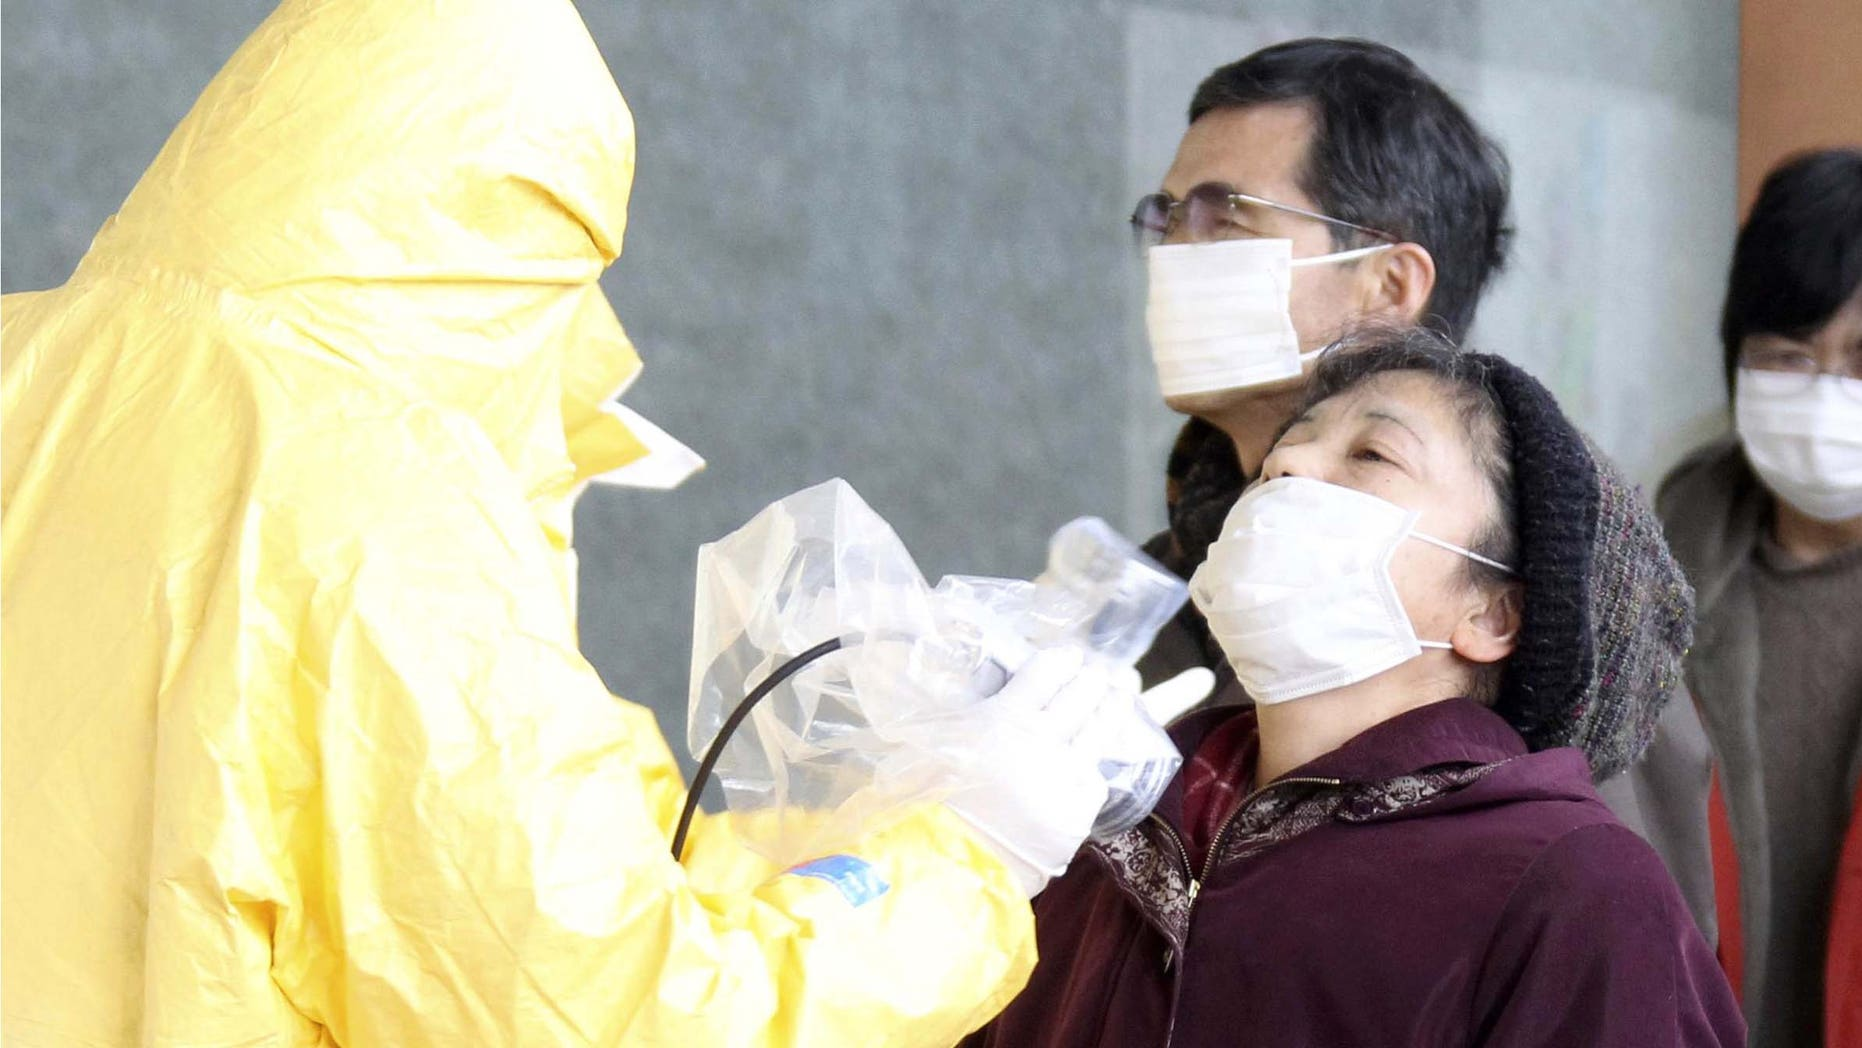 A woman is tested for radiation exposure in Nihonmatsu, northern Japan Wednesday, March 16, 2011 after Friday's massive earthquake and tsunami. (AP Photo/Yomiuri Shimbun, Koichi Nakamura) JAPAN OUT, MANDATORY CREDIT